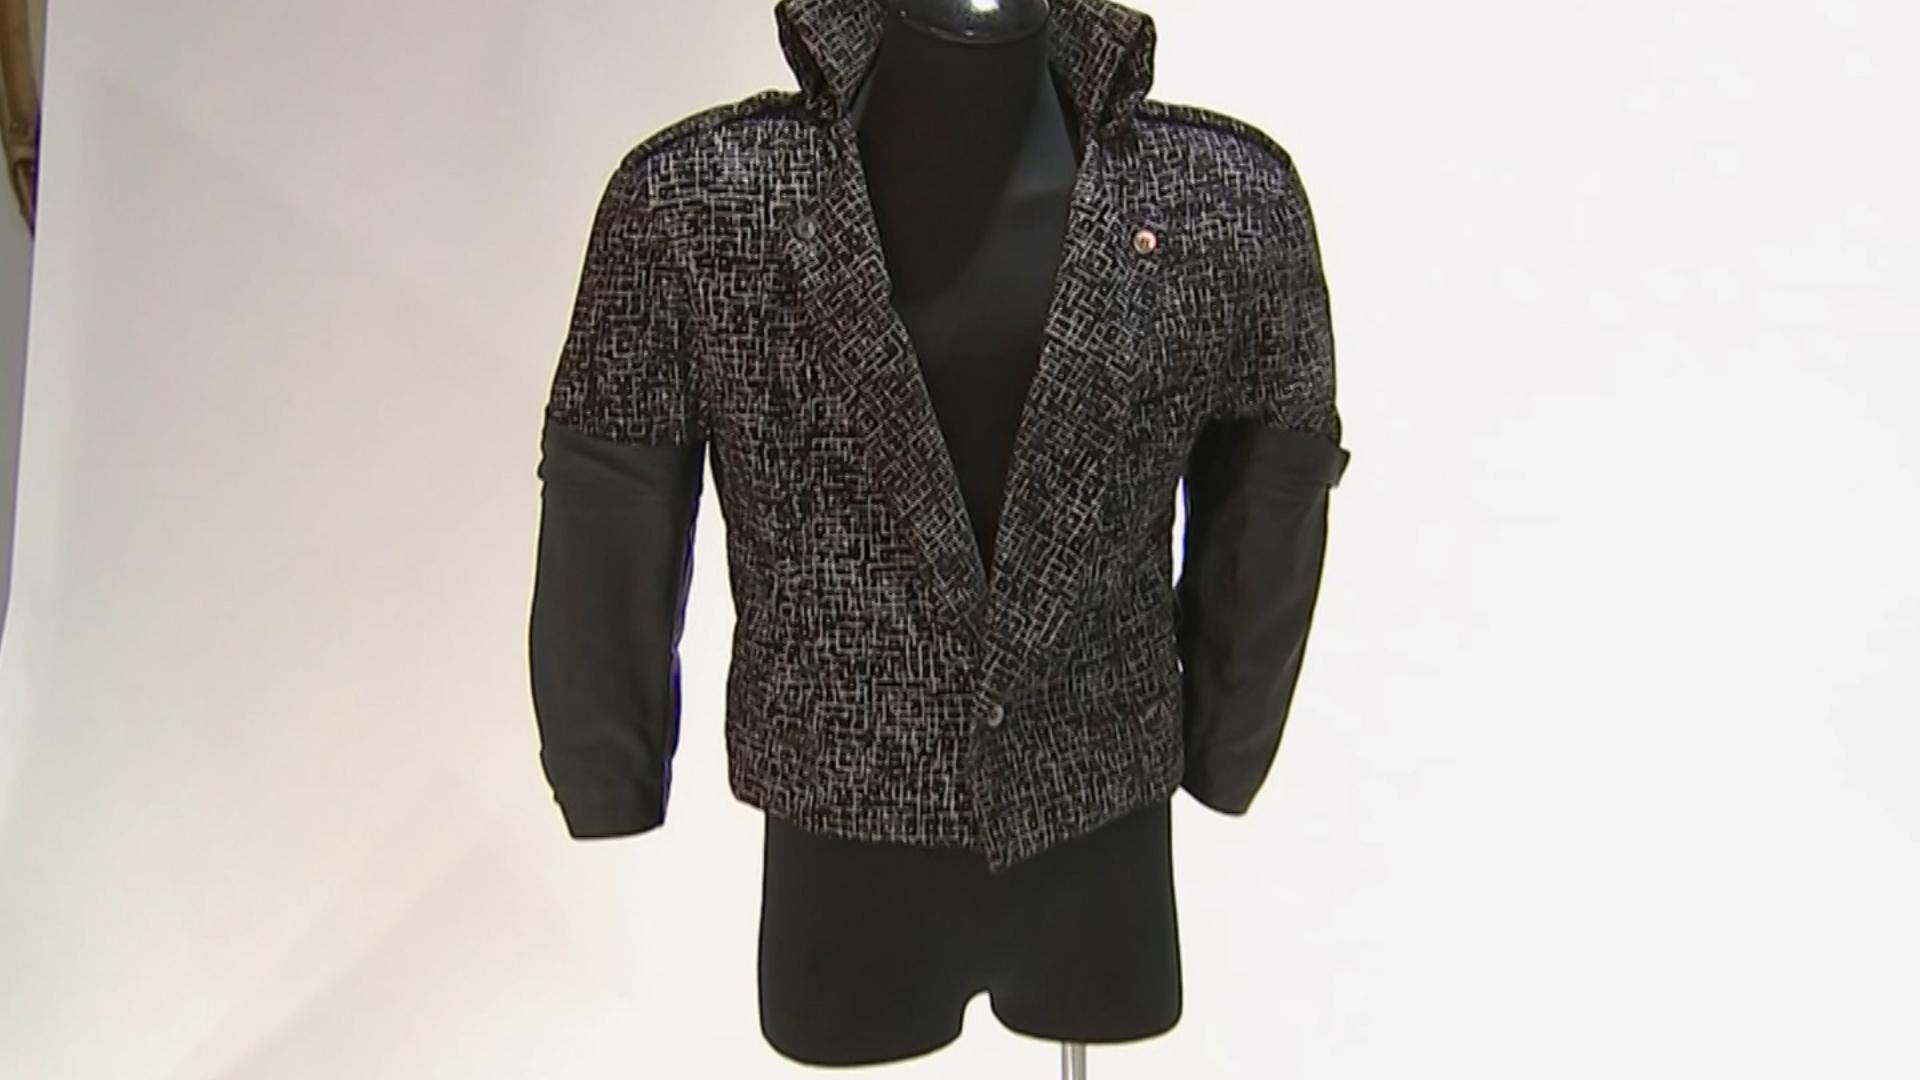 Prince's Jacket Up for Auction